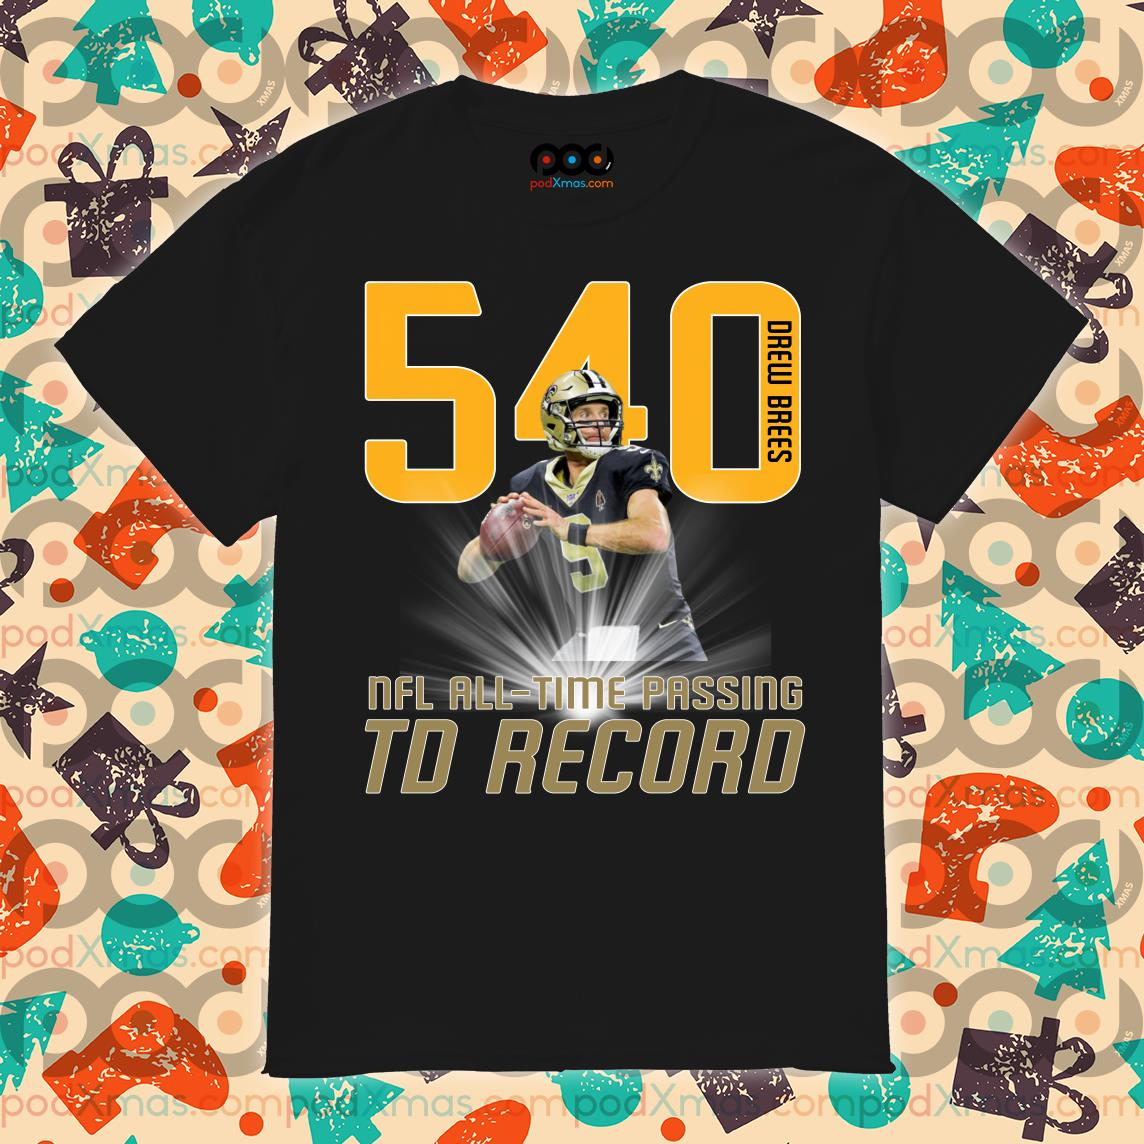 Drew Brees 540 NFL ALL-TIME PASSING TD record shirt